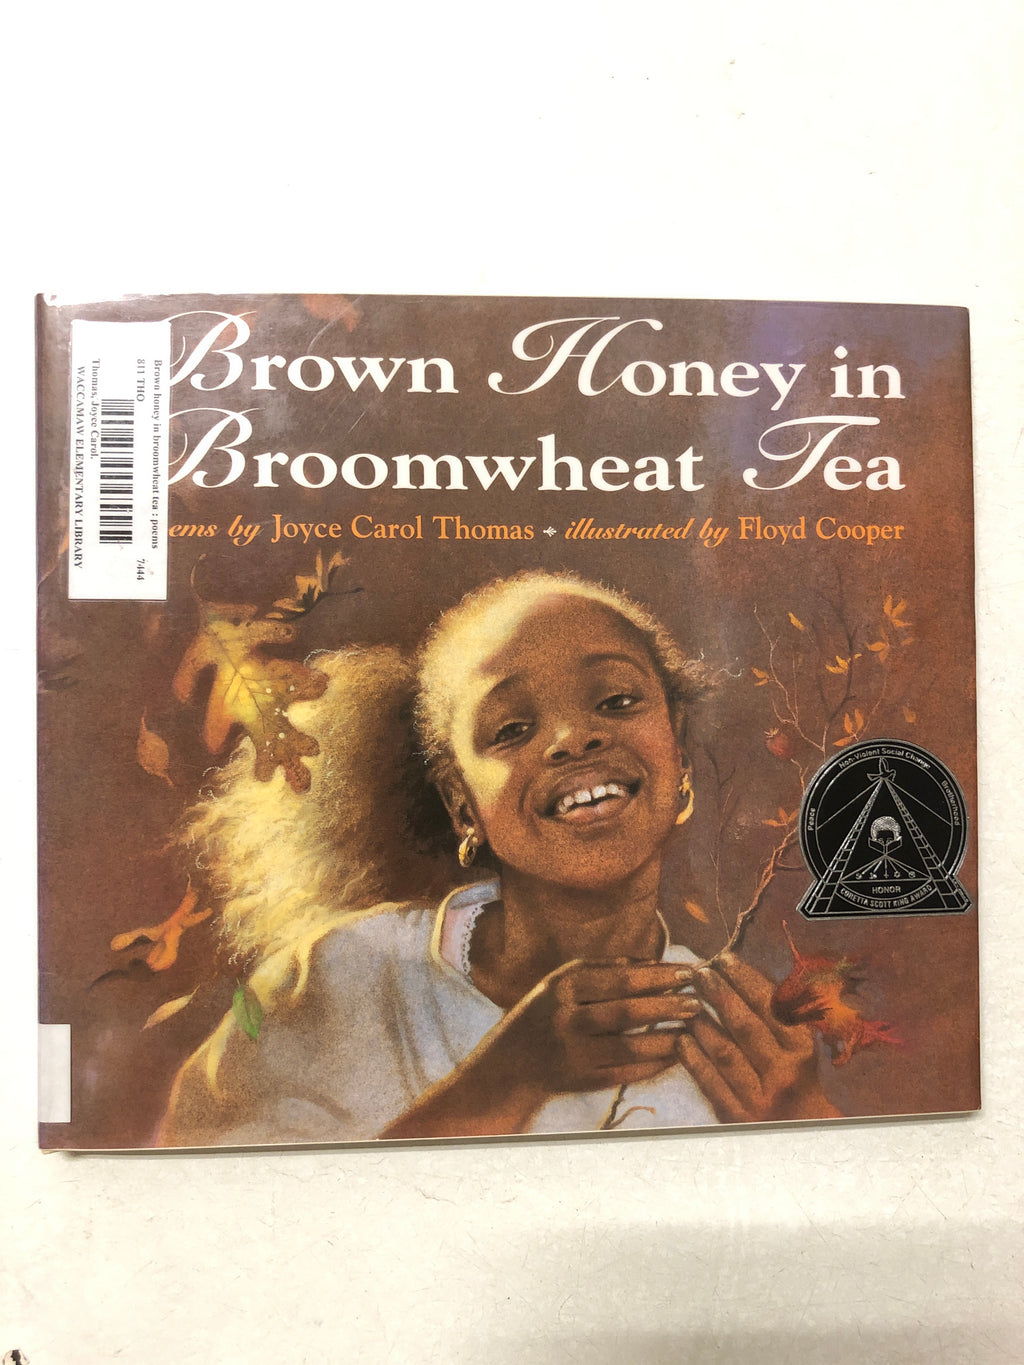 Brown Honey in Broomwheat Tea - Slick Cat Books